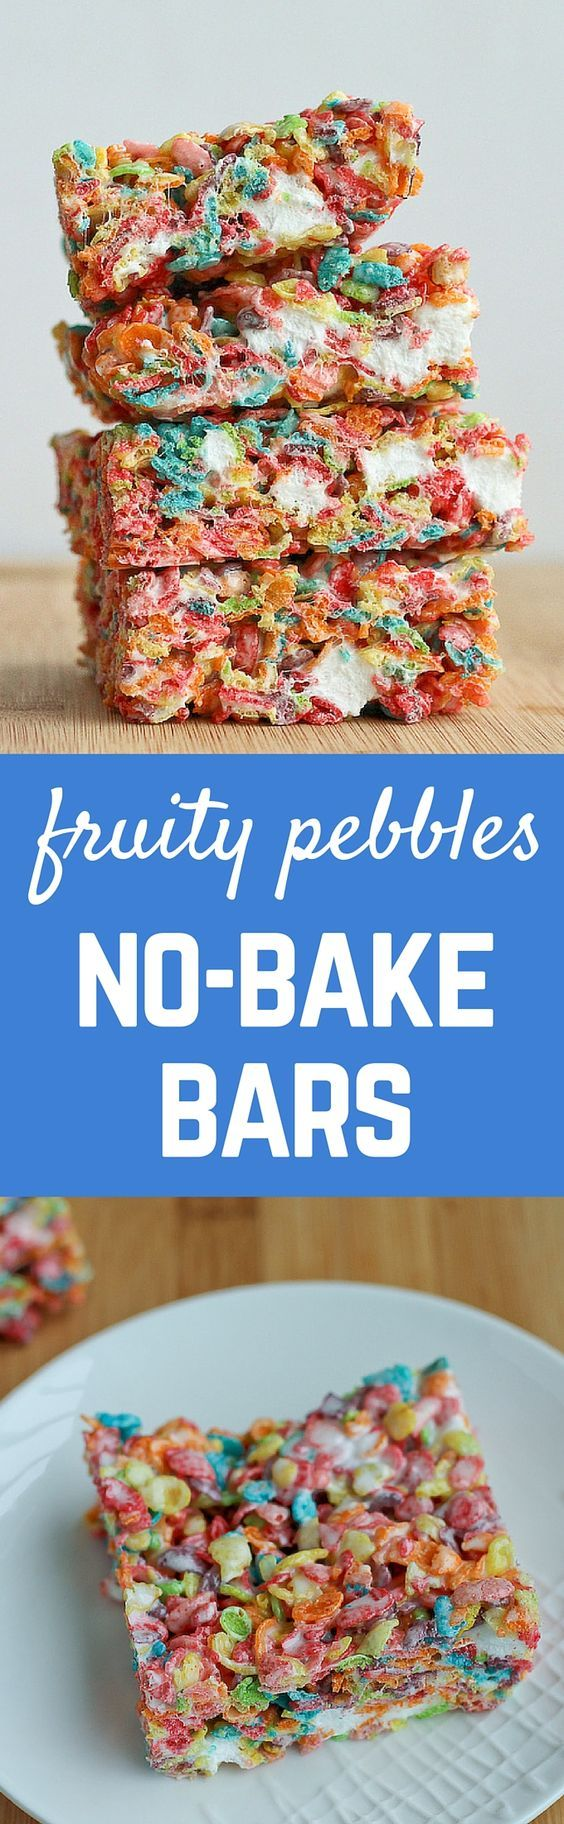 These fun treats are an easy twist on the classic rice crispy treats -- your kids (and adults, too!) will love these fruity pebbles no-bake bars.